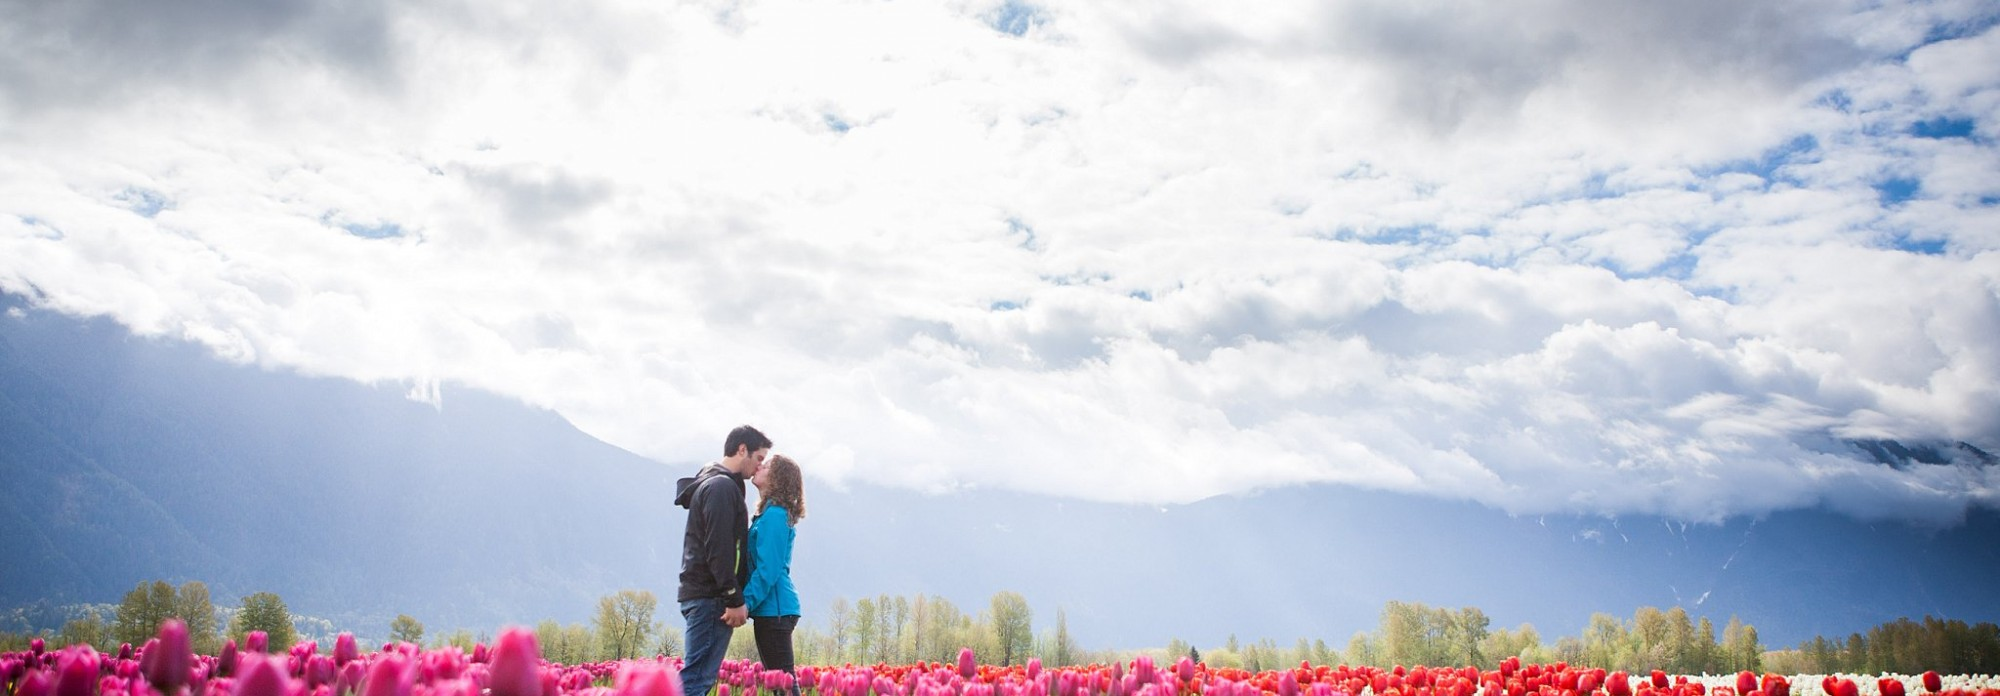 Romantic Engagement Photography, Tulips